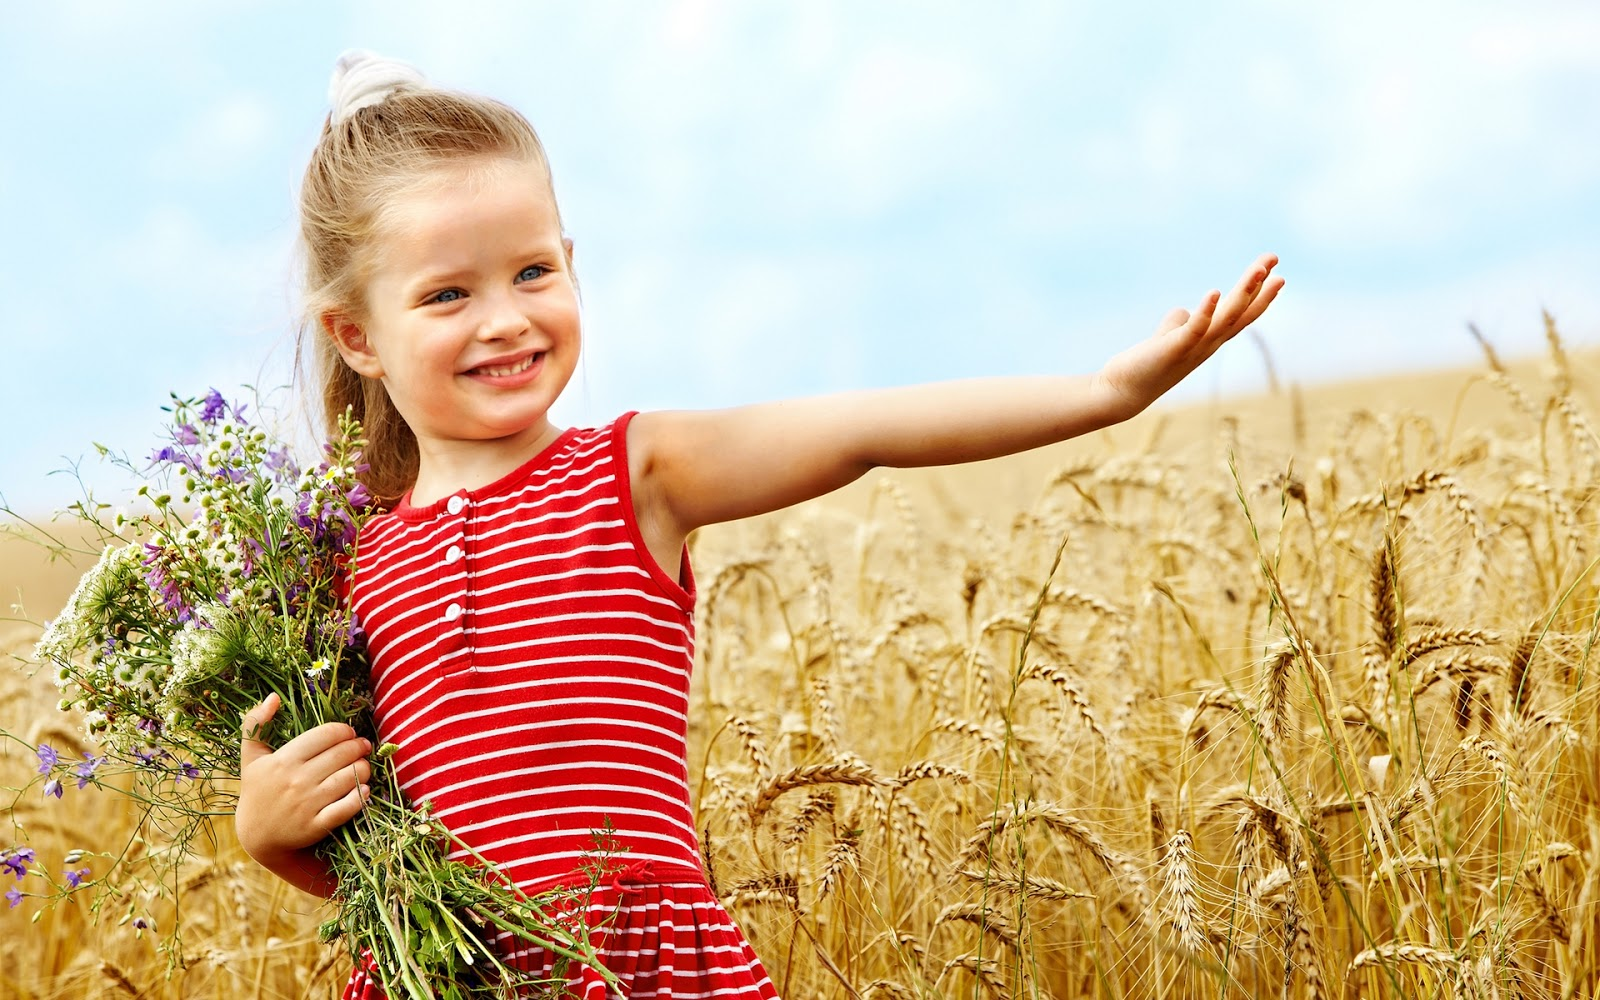 Cute Little Girl Wheat Field With Flowers Hd Wallpaper